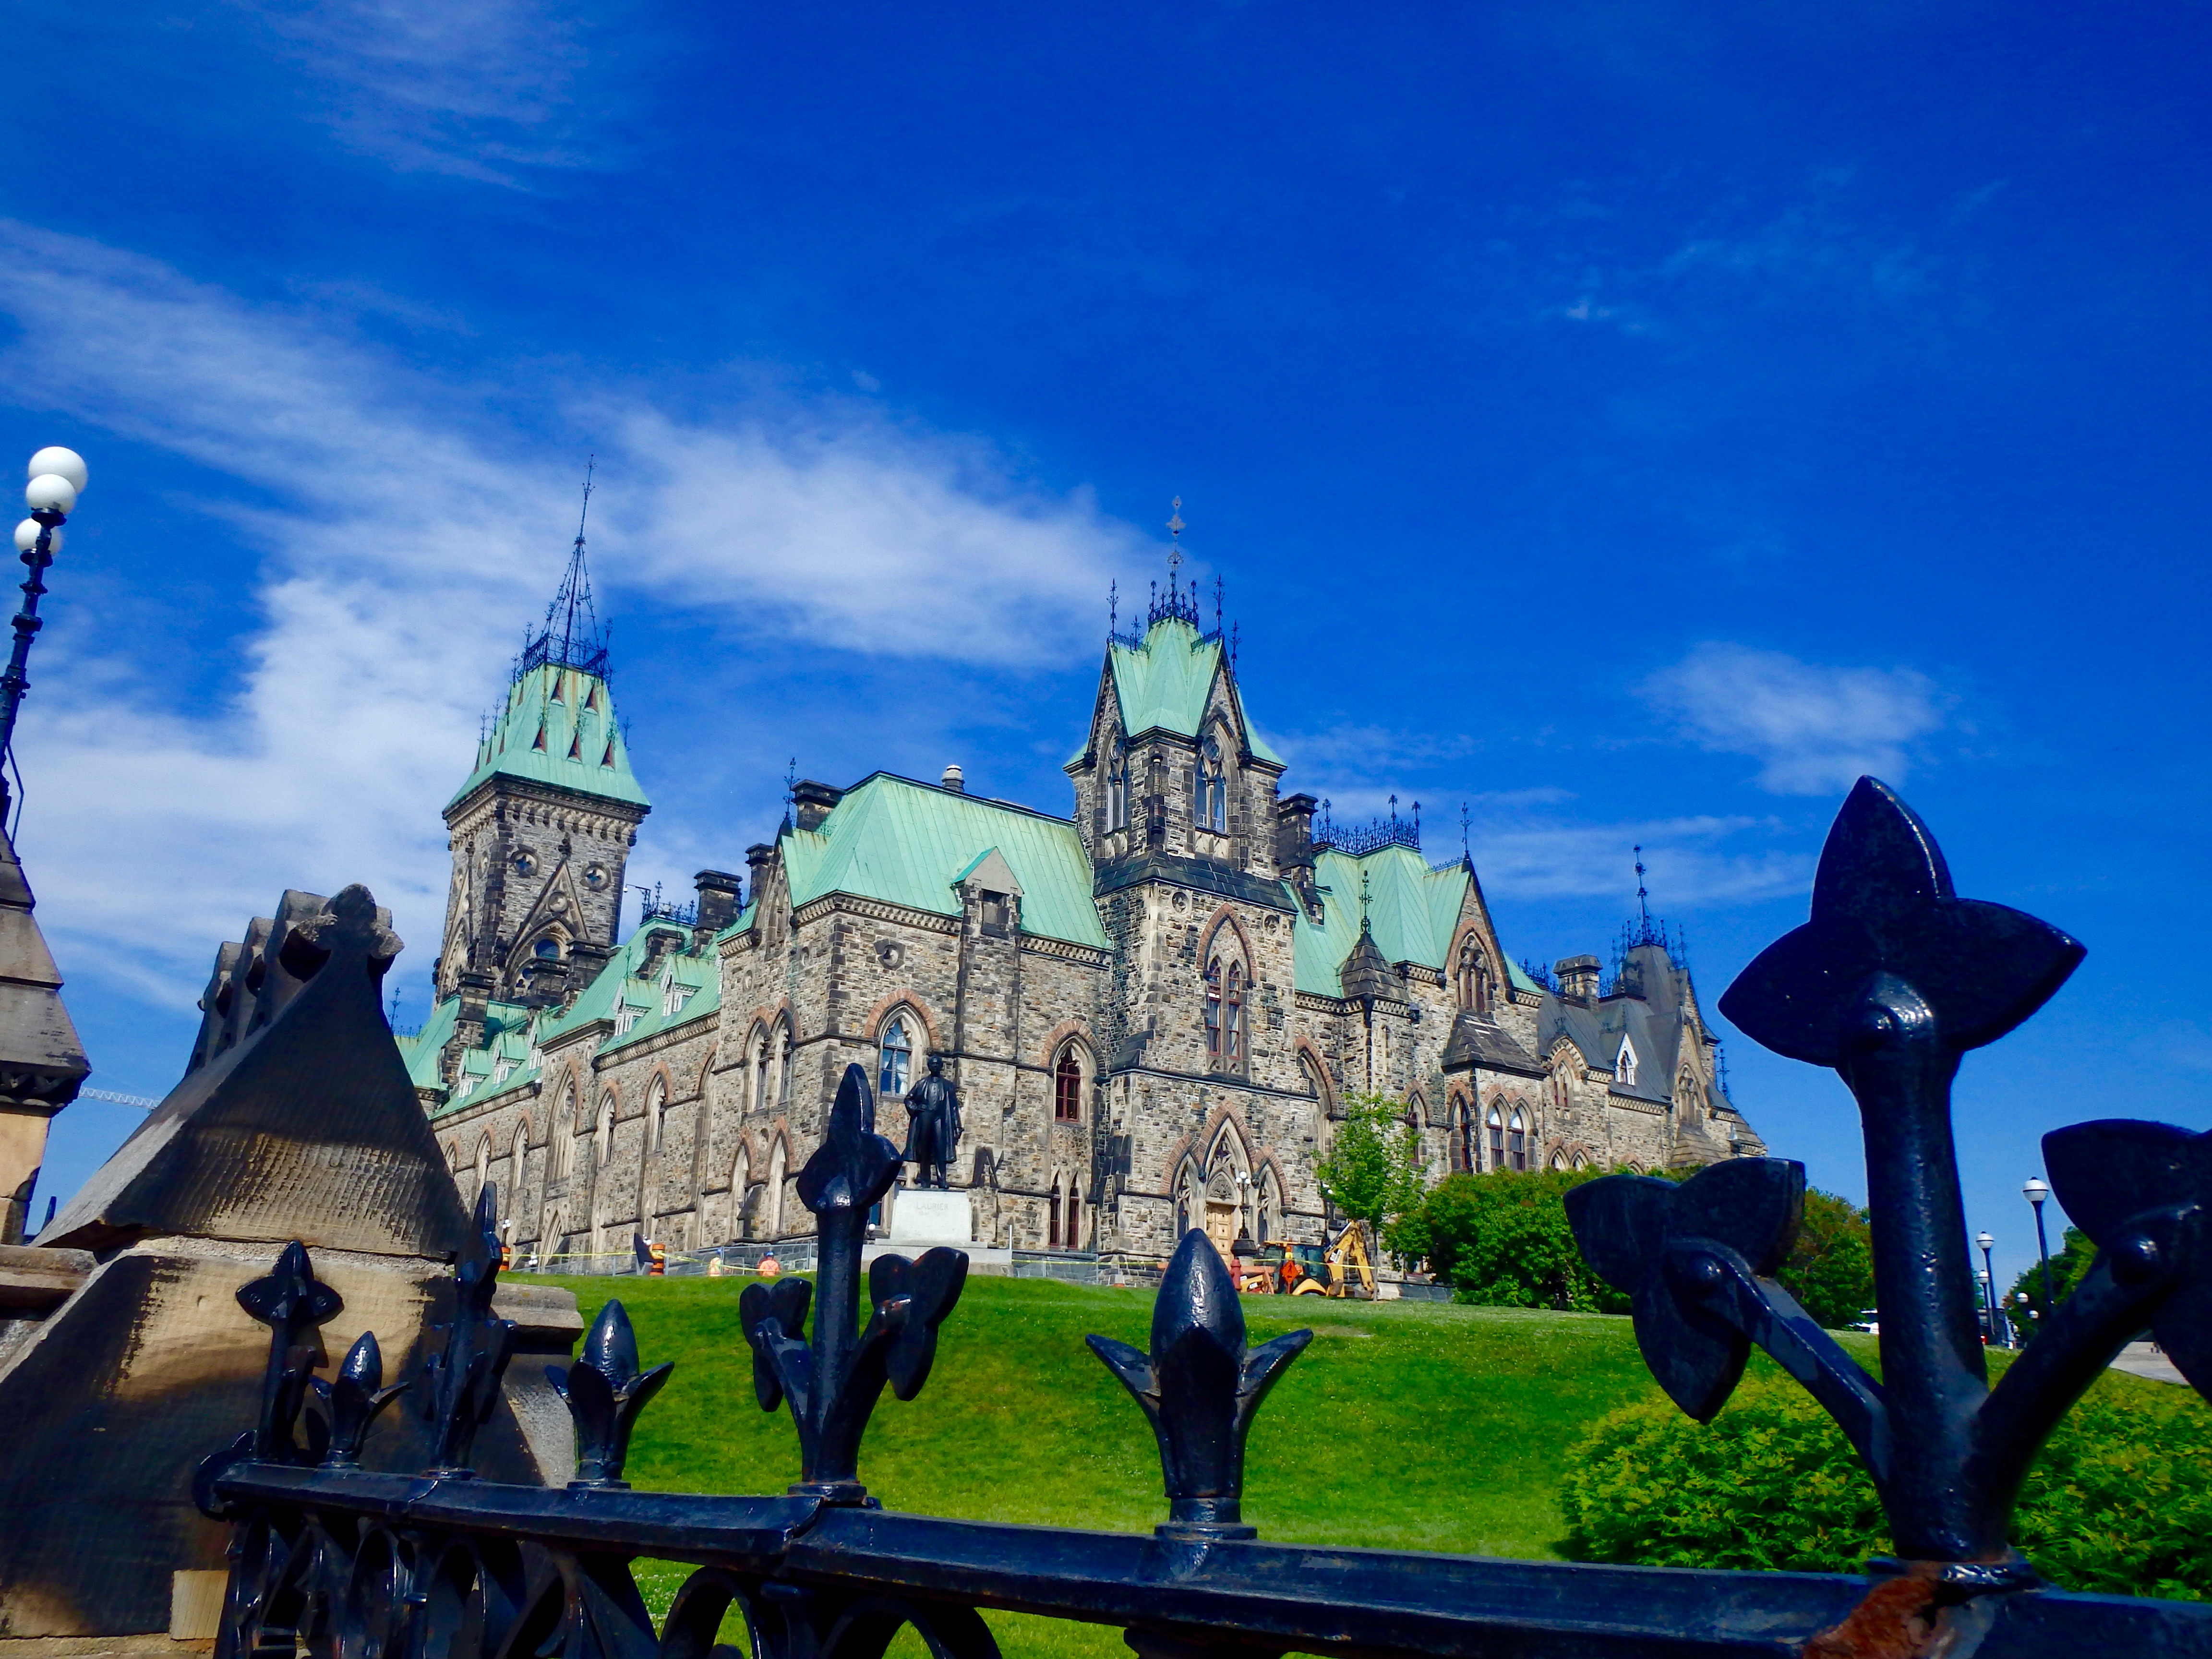 East block of parliament ottawa canada top attractions in ottawa for tourists